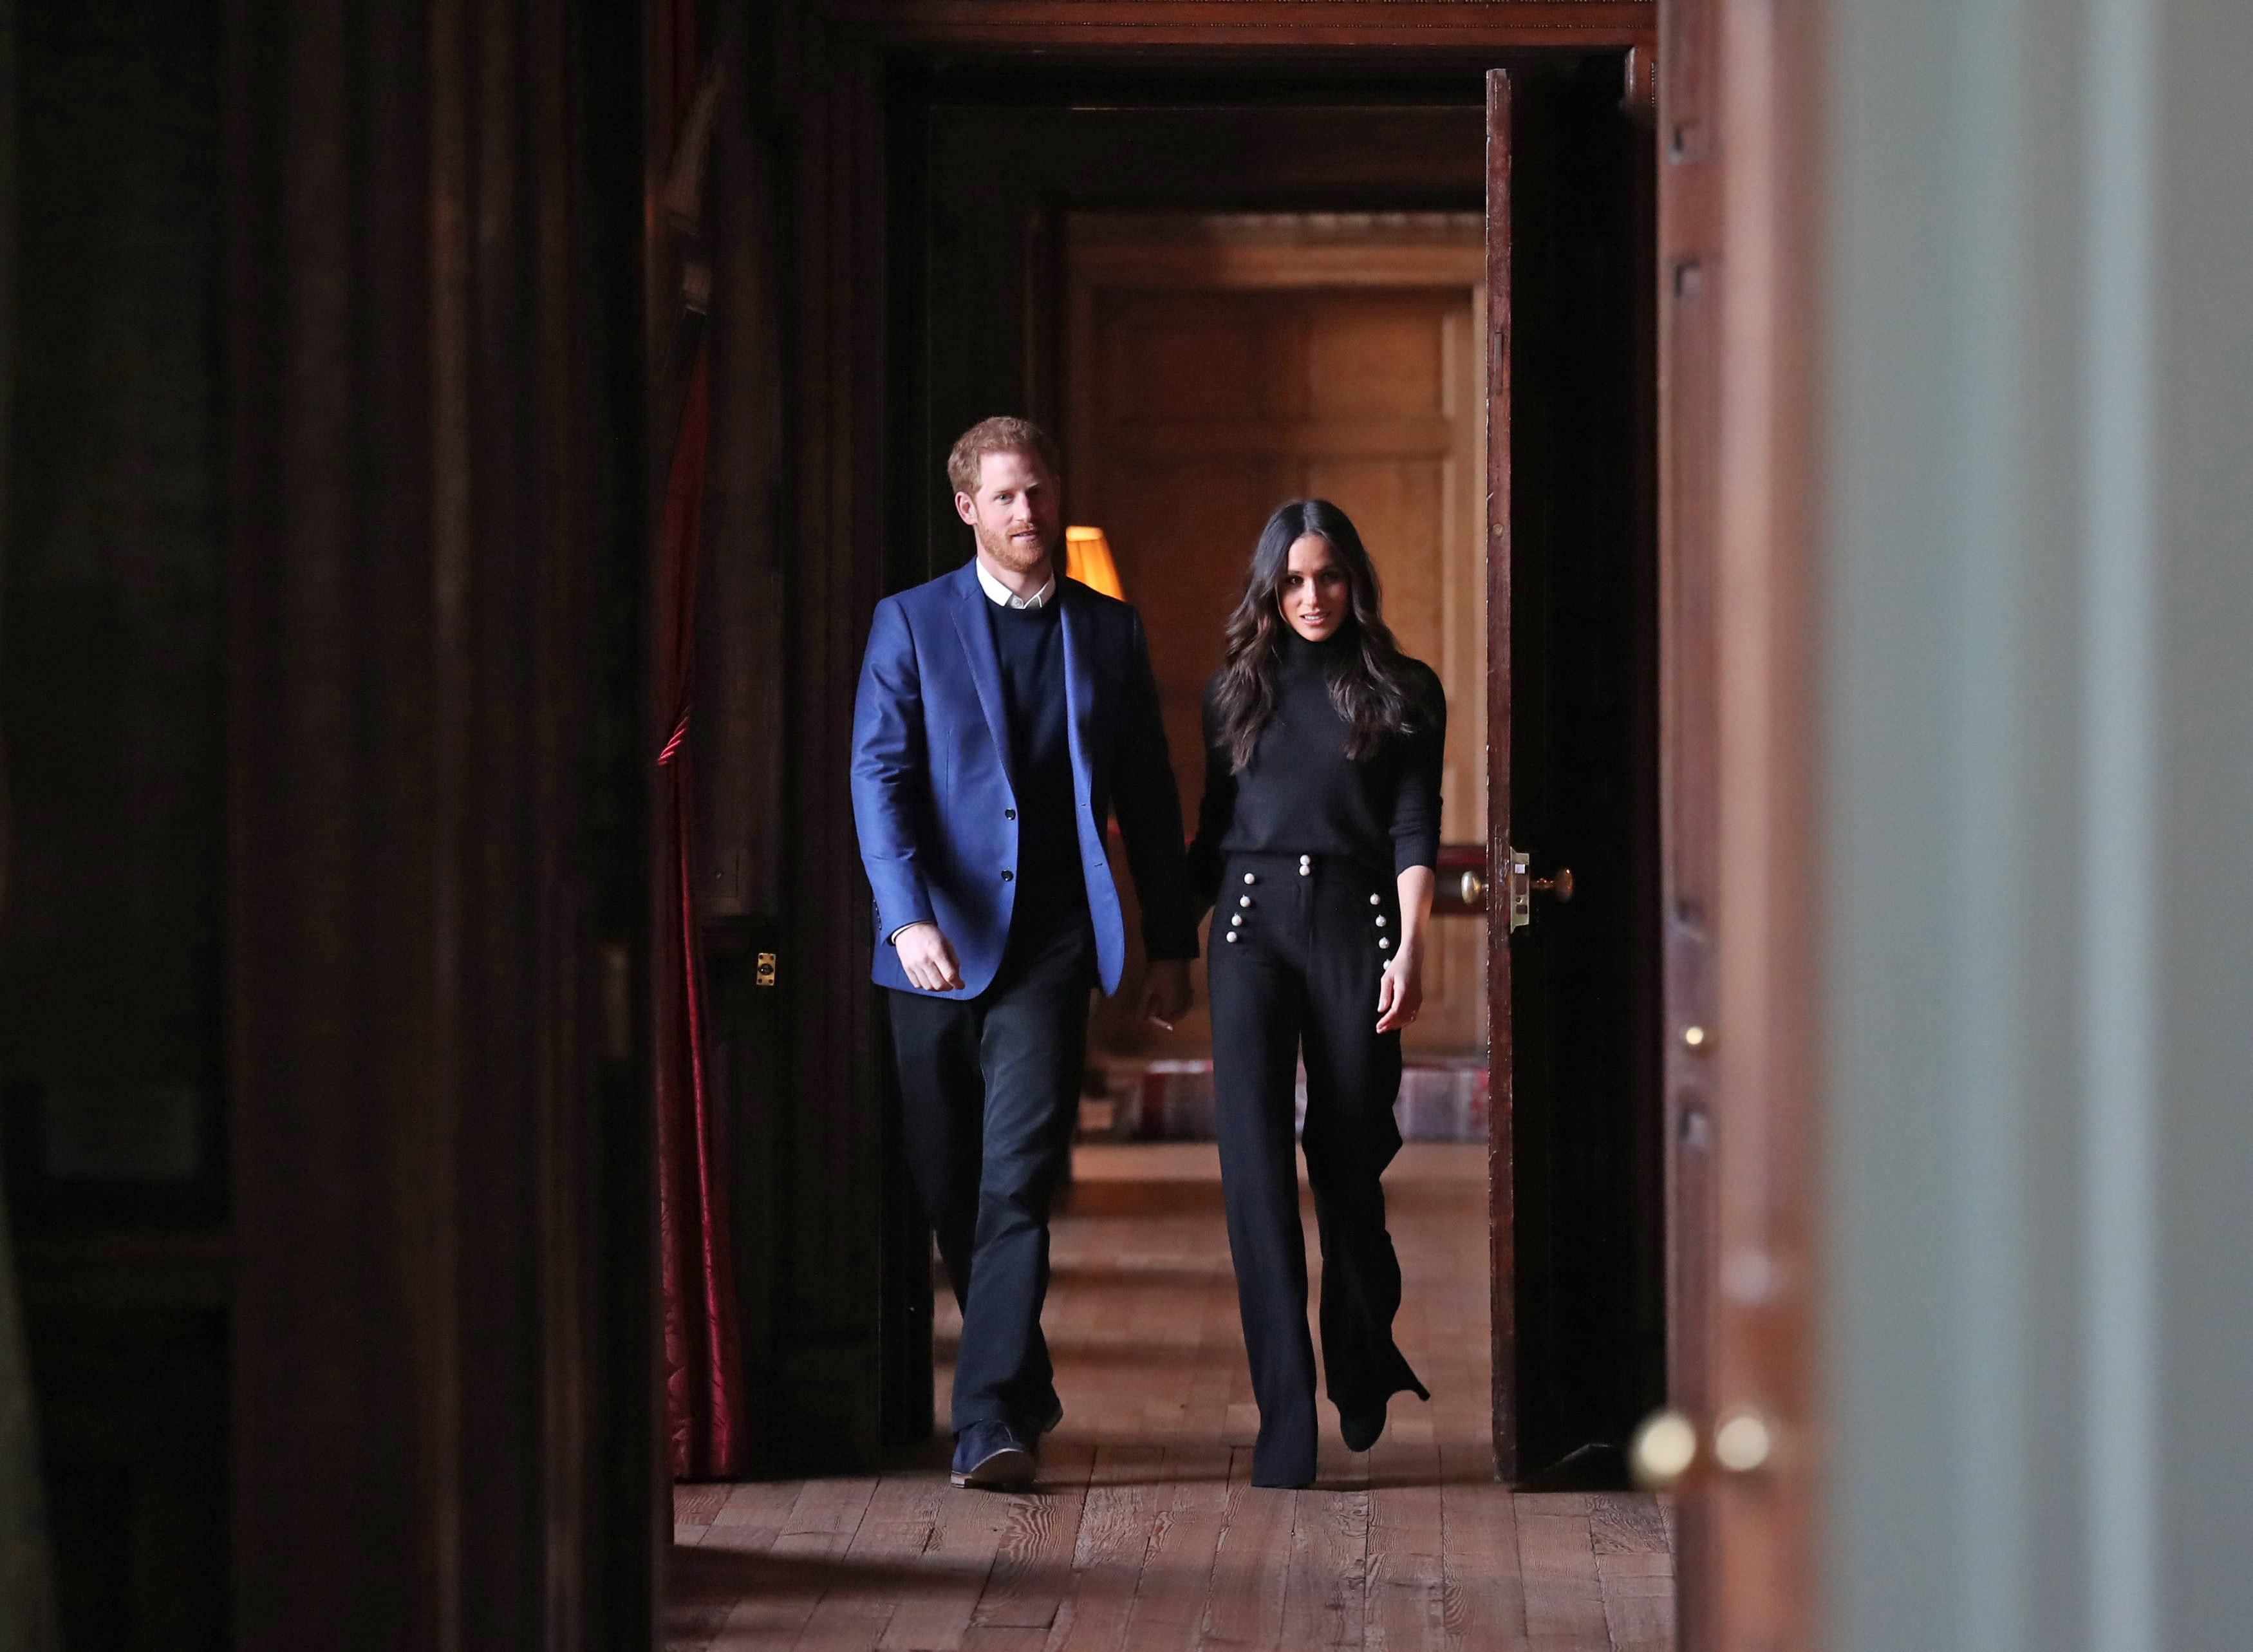 Prince Harry and Meghan Markle walk through the corridors of the Palace of Holyroodhouse.